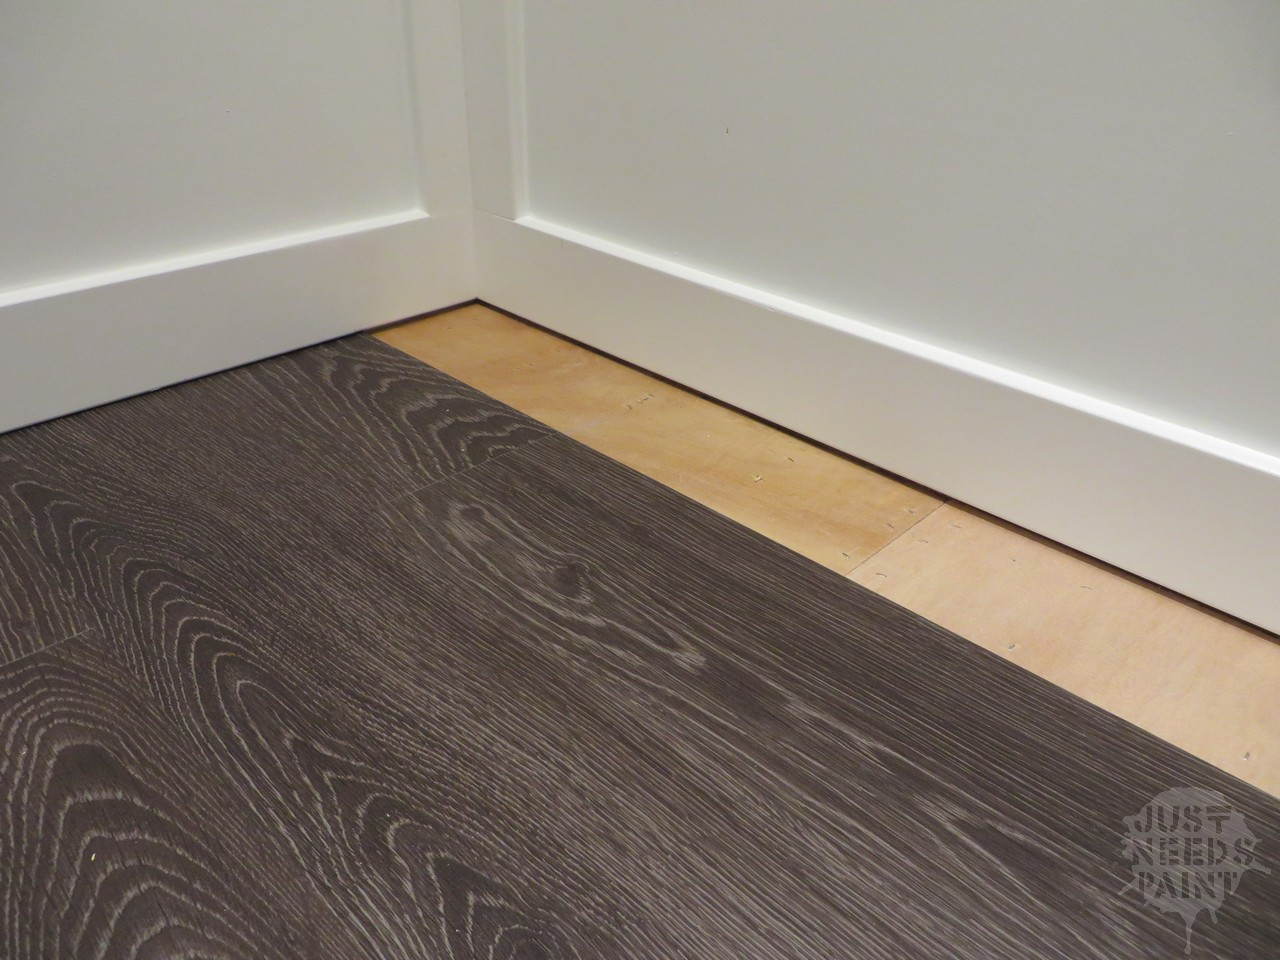 Installing Lock Laminate Flooring Without Removing Baseboards Is Not Covered In The Installation Instructions